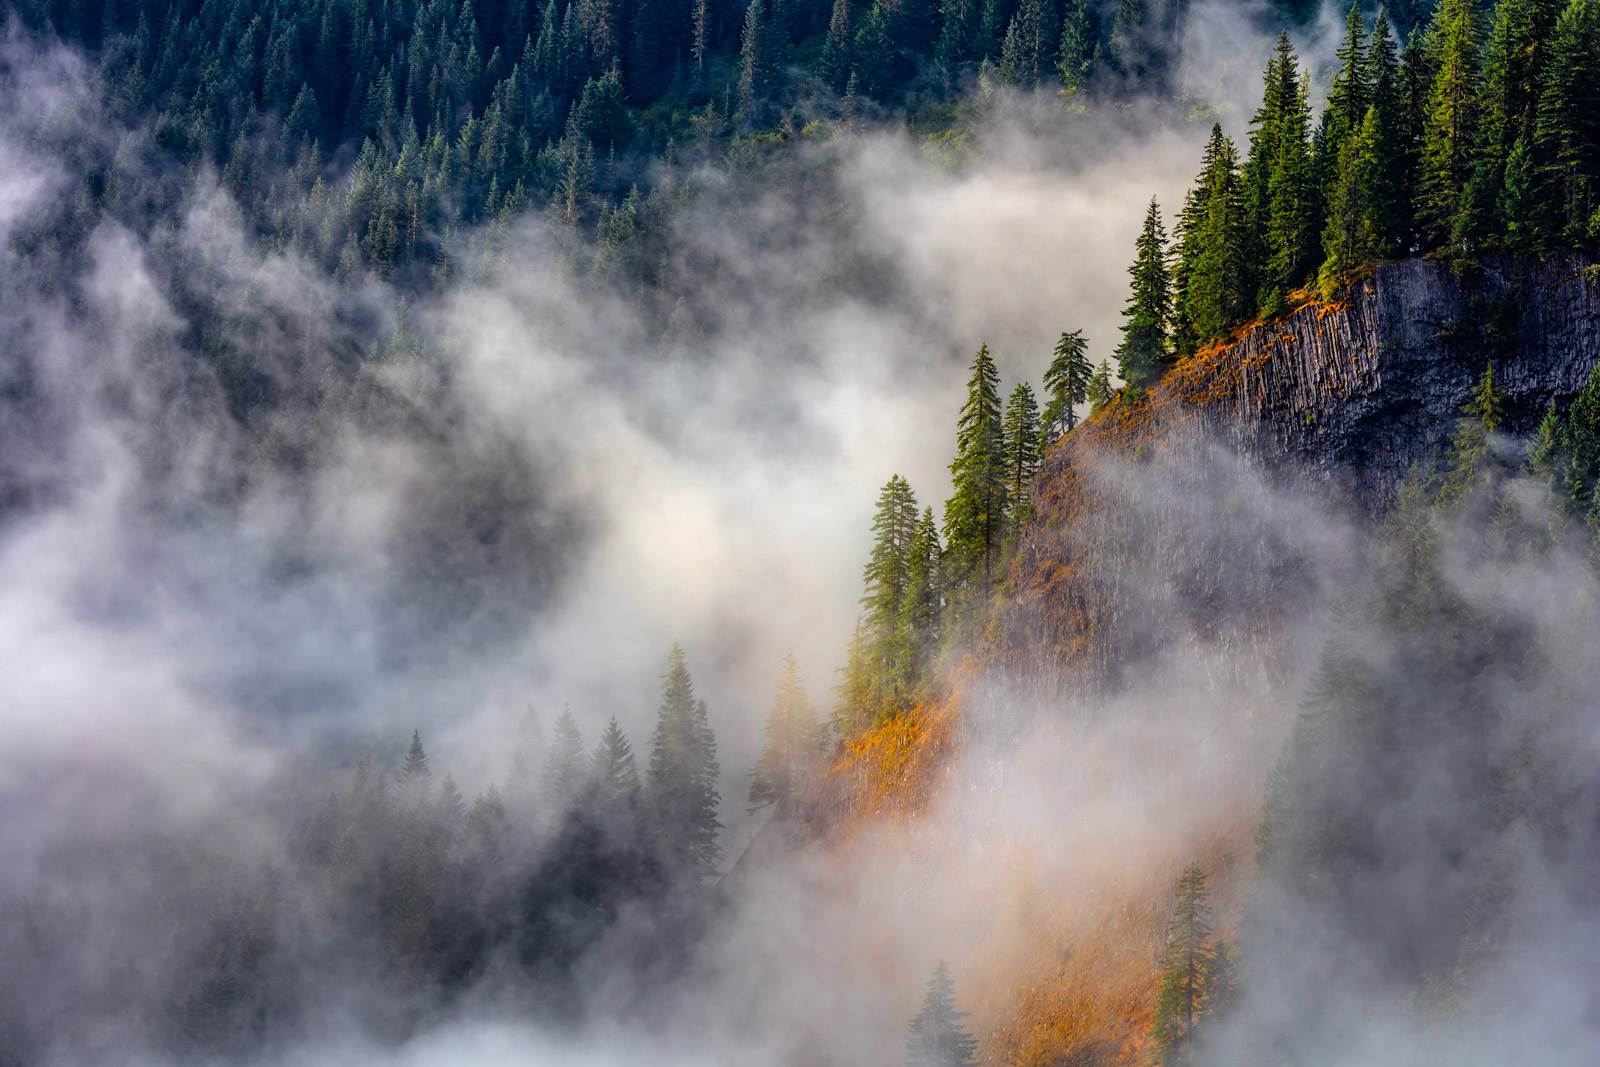 trees emerging though the fog